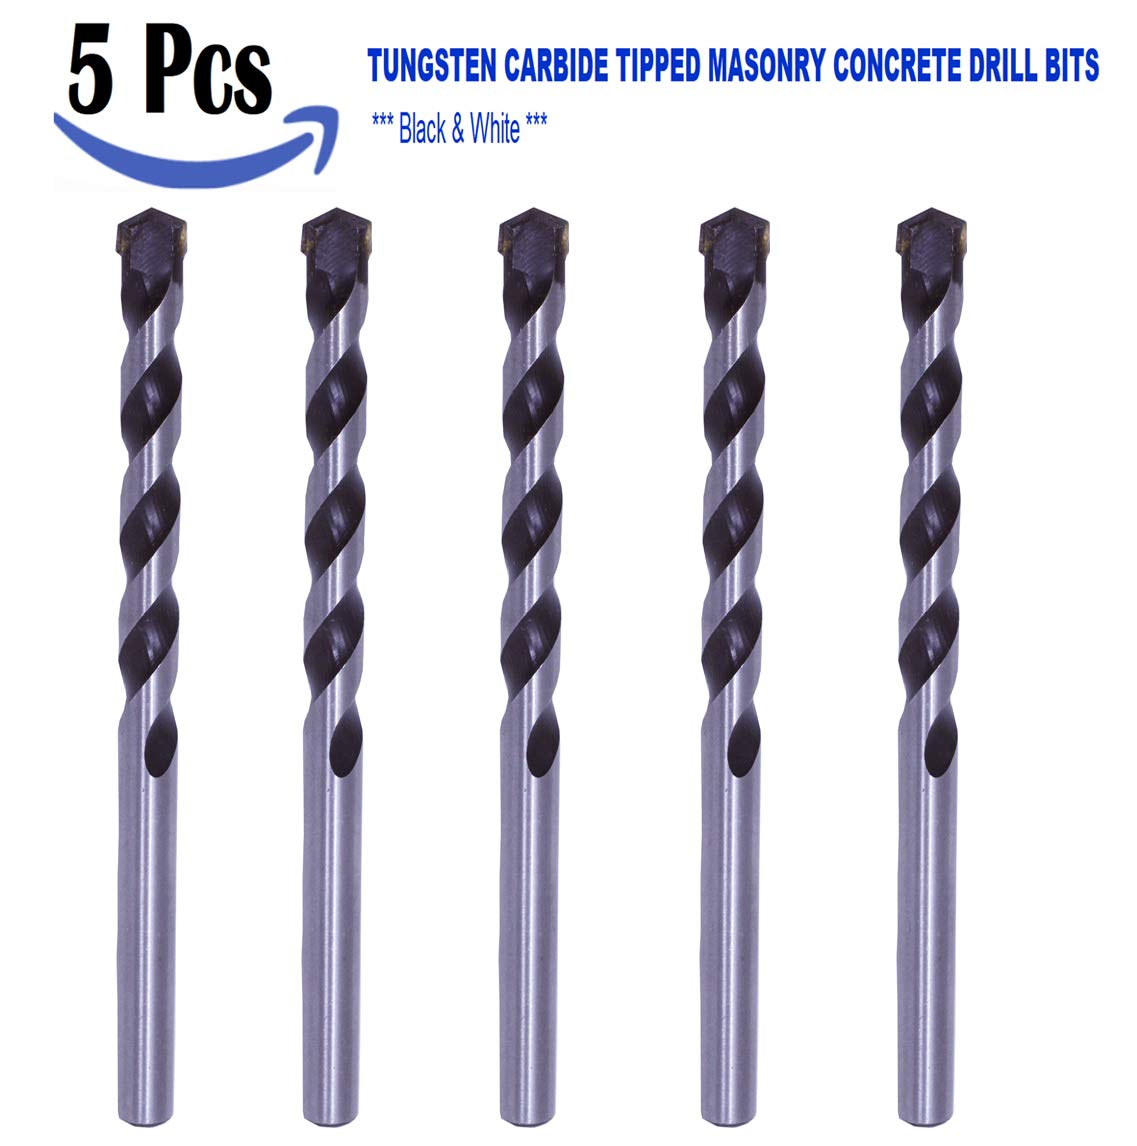 Concrete Drills Through Bricks Stones Tiles Max-Craft 3//16 Inch 10 Pcs Pack Masonry Drill Bit Concrete Carbide tipped Black//White finished Drywall and other Masonry Construction Work